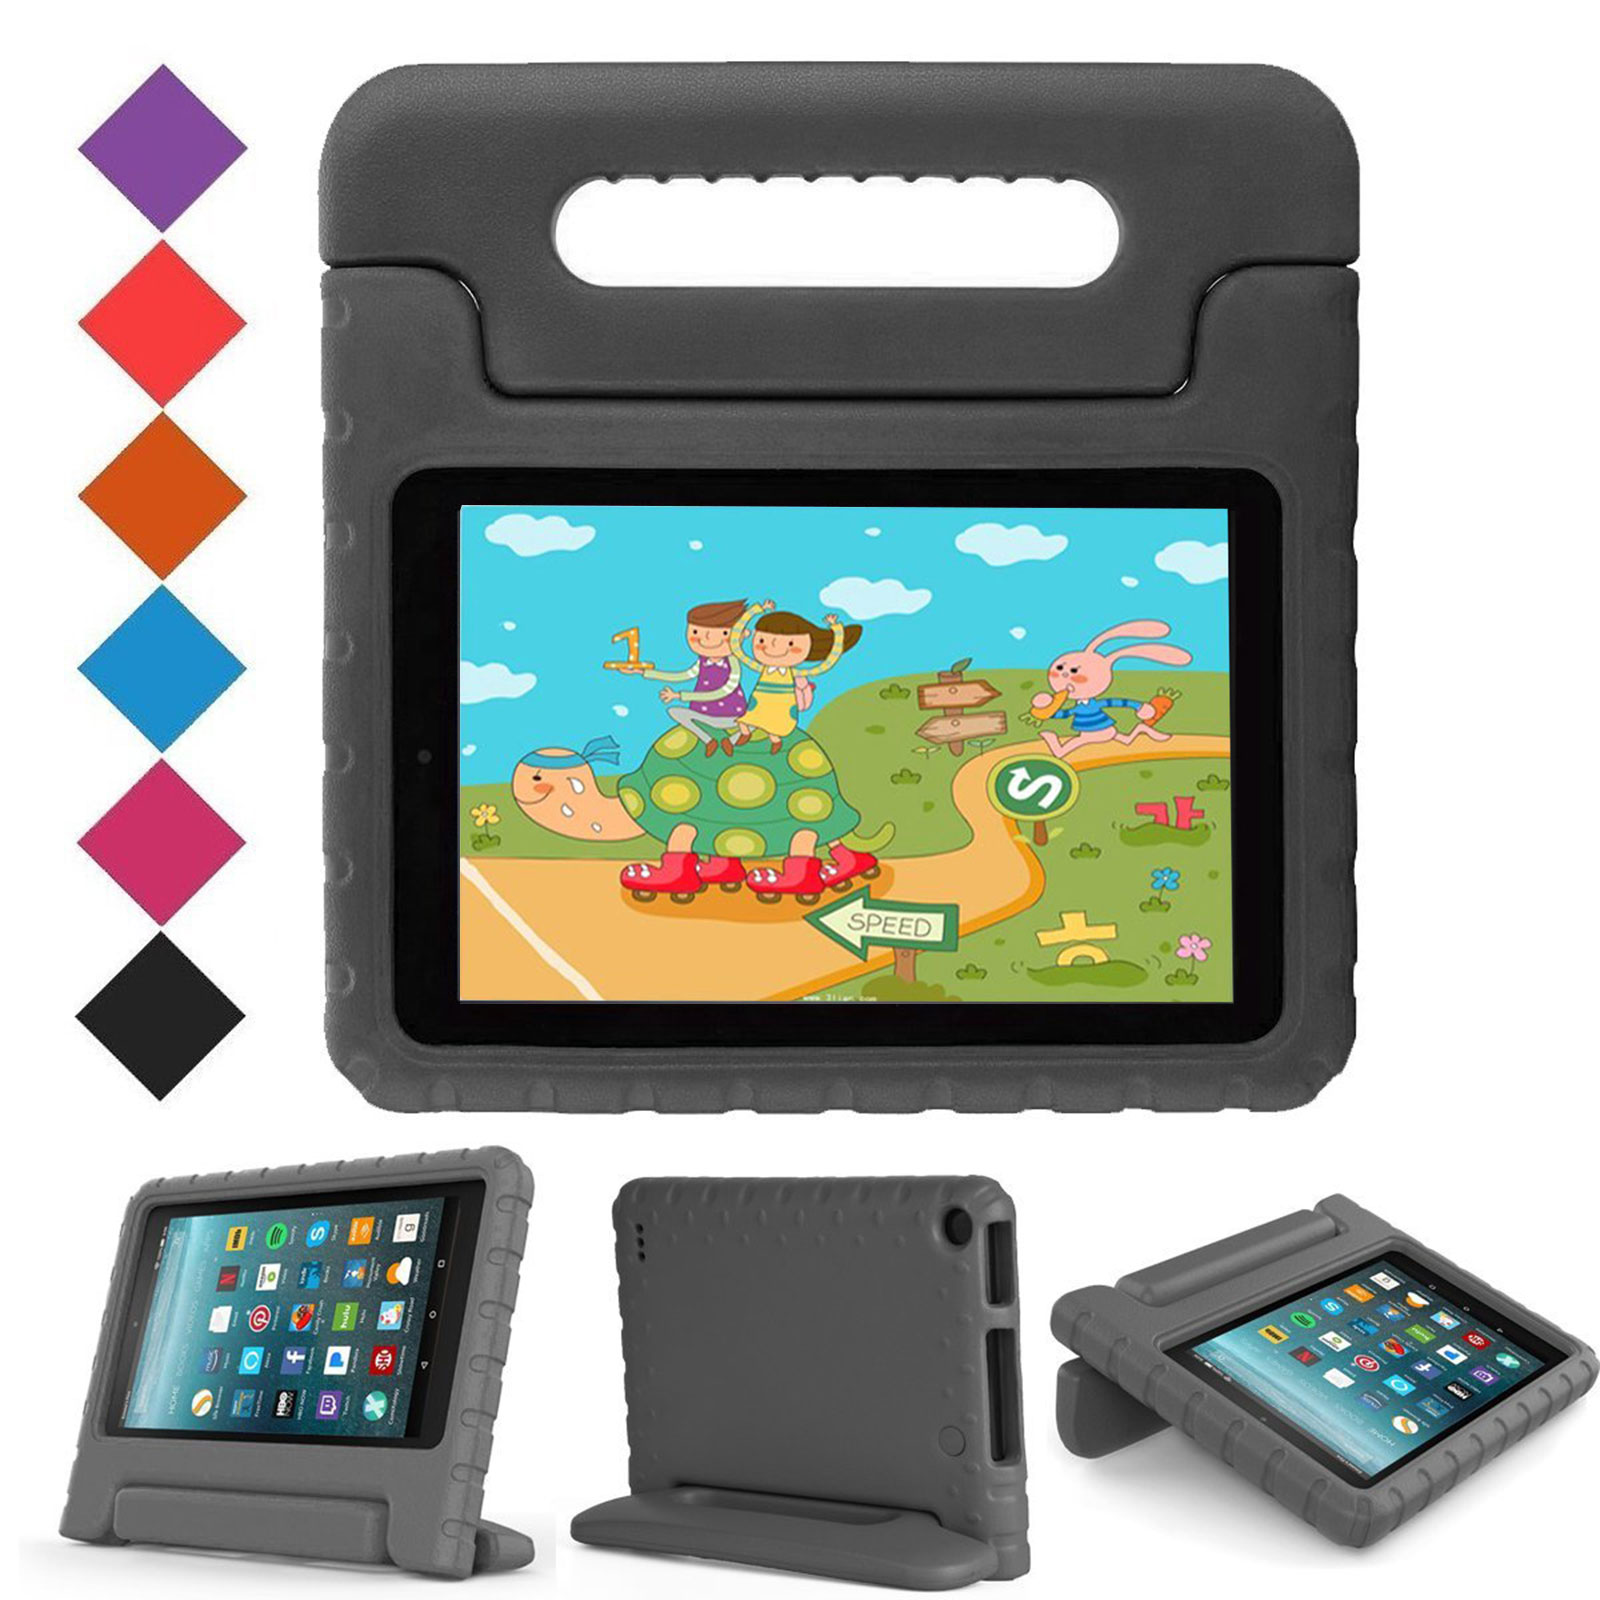 Goodest Case for All-New Amazon Fire 7 Tablet (7th Gen, 2017) - Kiddie Series Light Weight Convertible Handle Stand Kids Friendly Cover, compatible with Fire 7 (5th/7th Gen, 2015/2017), Black